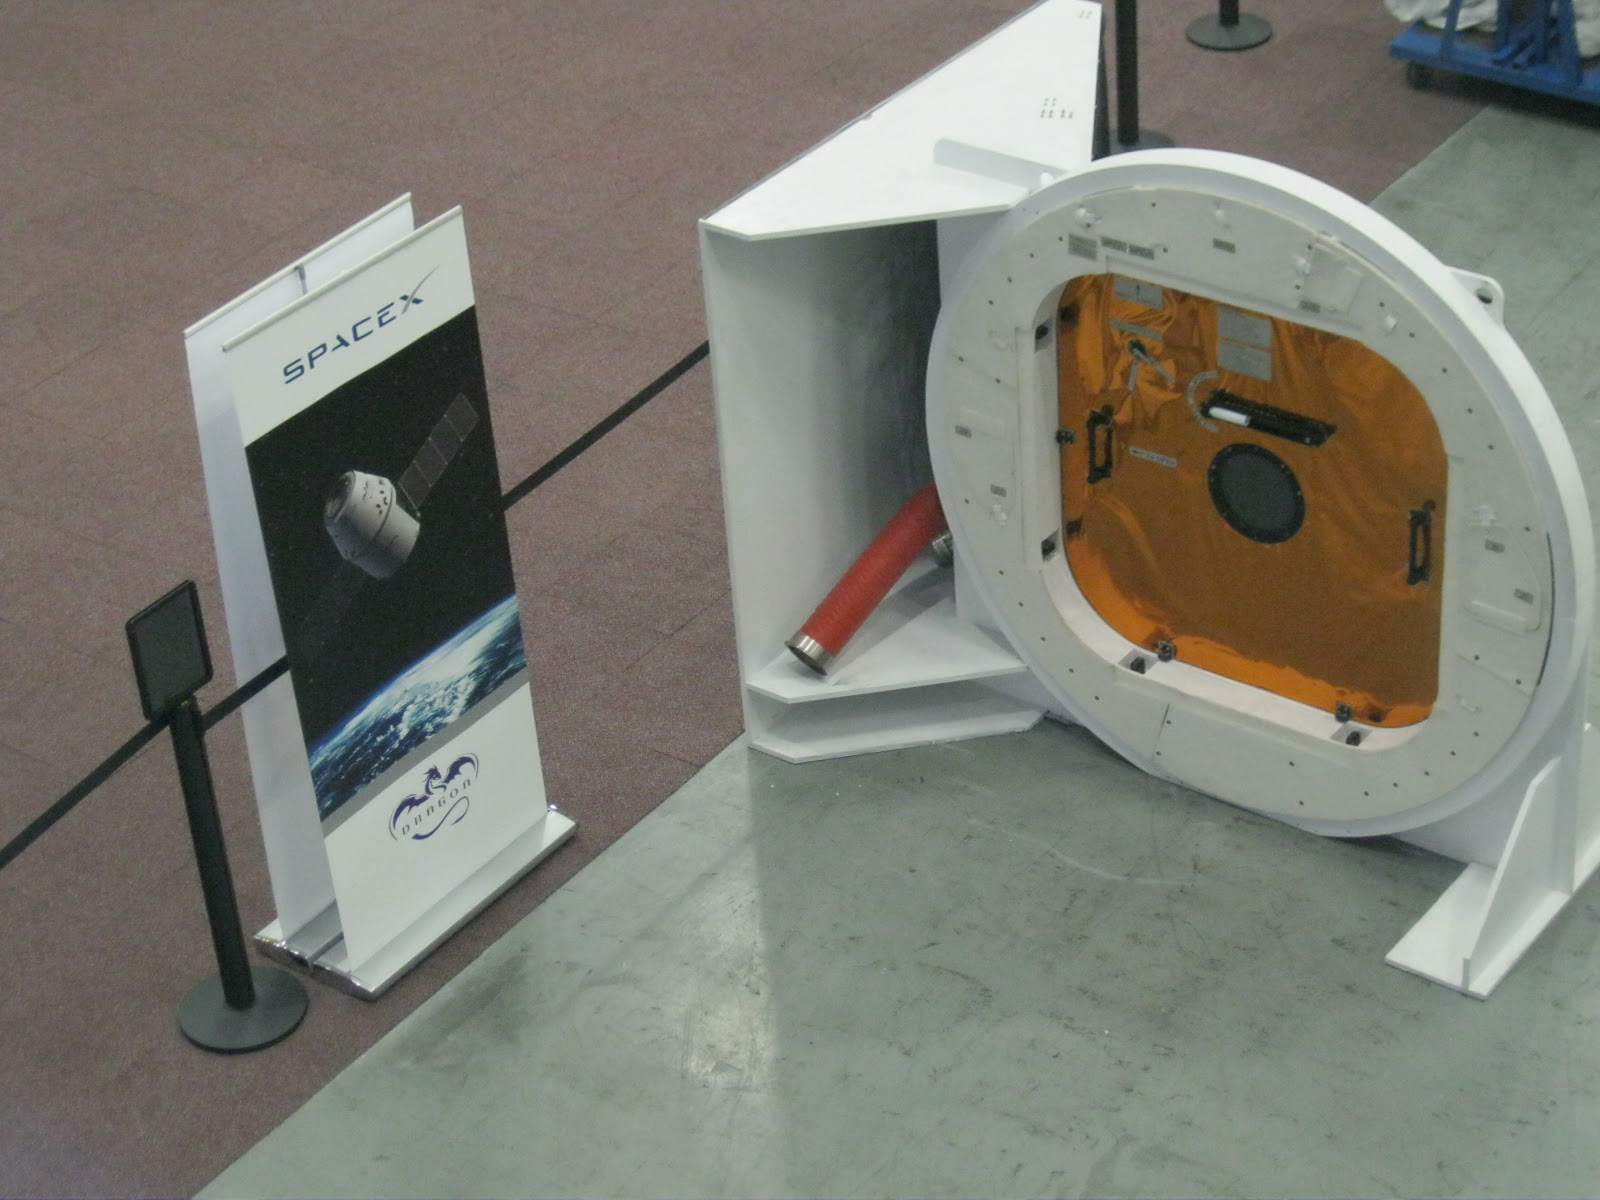 space x hatch door